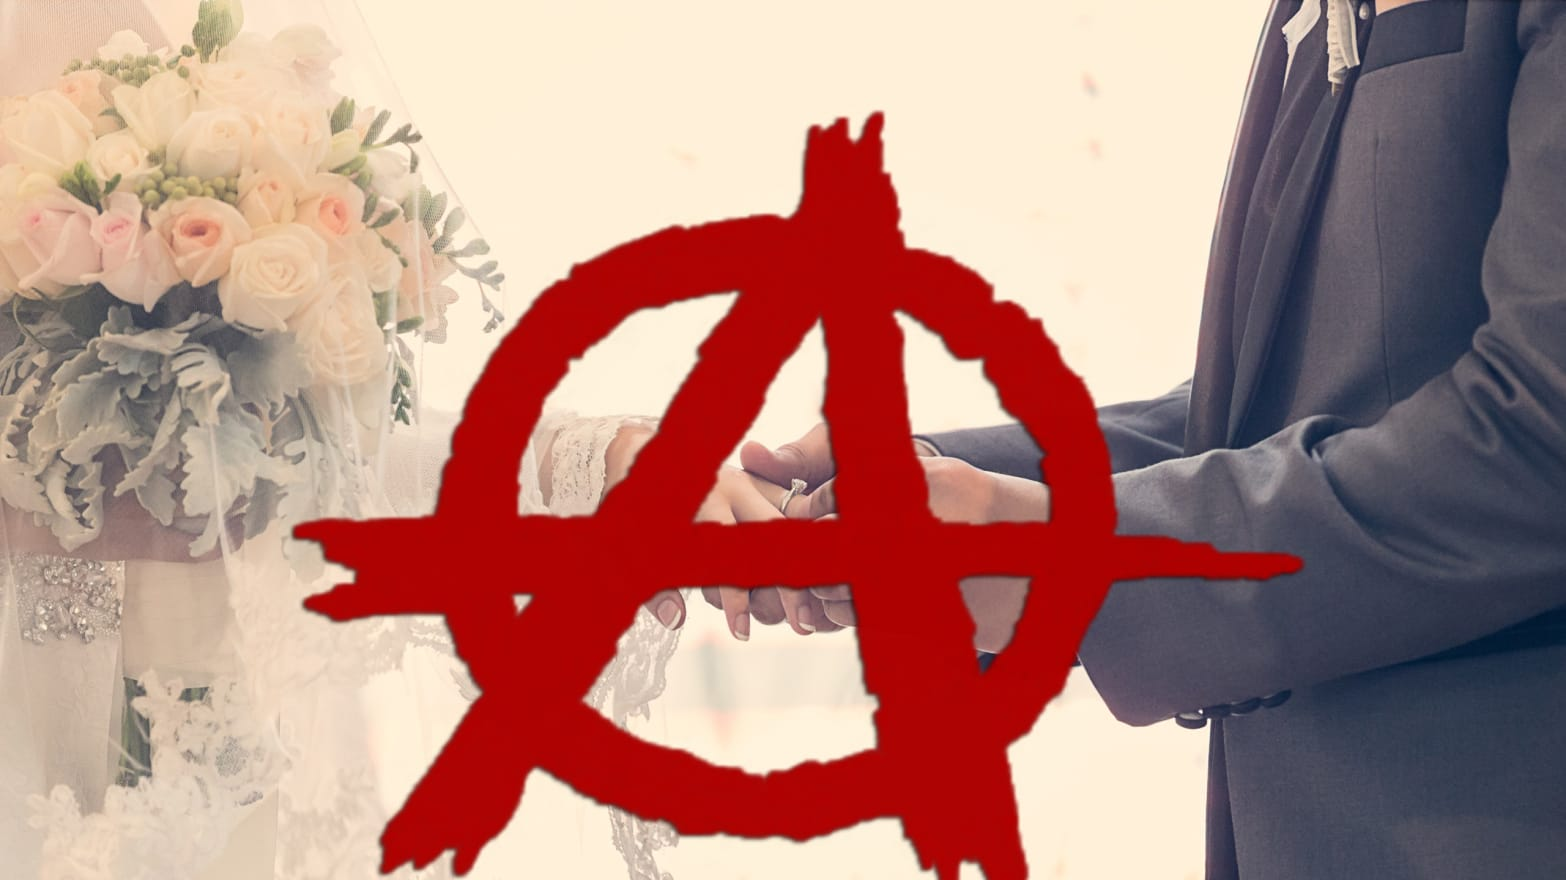 Antifa Weddings are Best Weddings